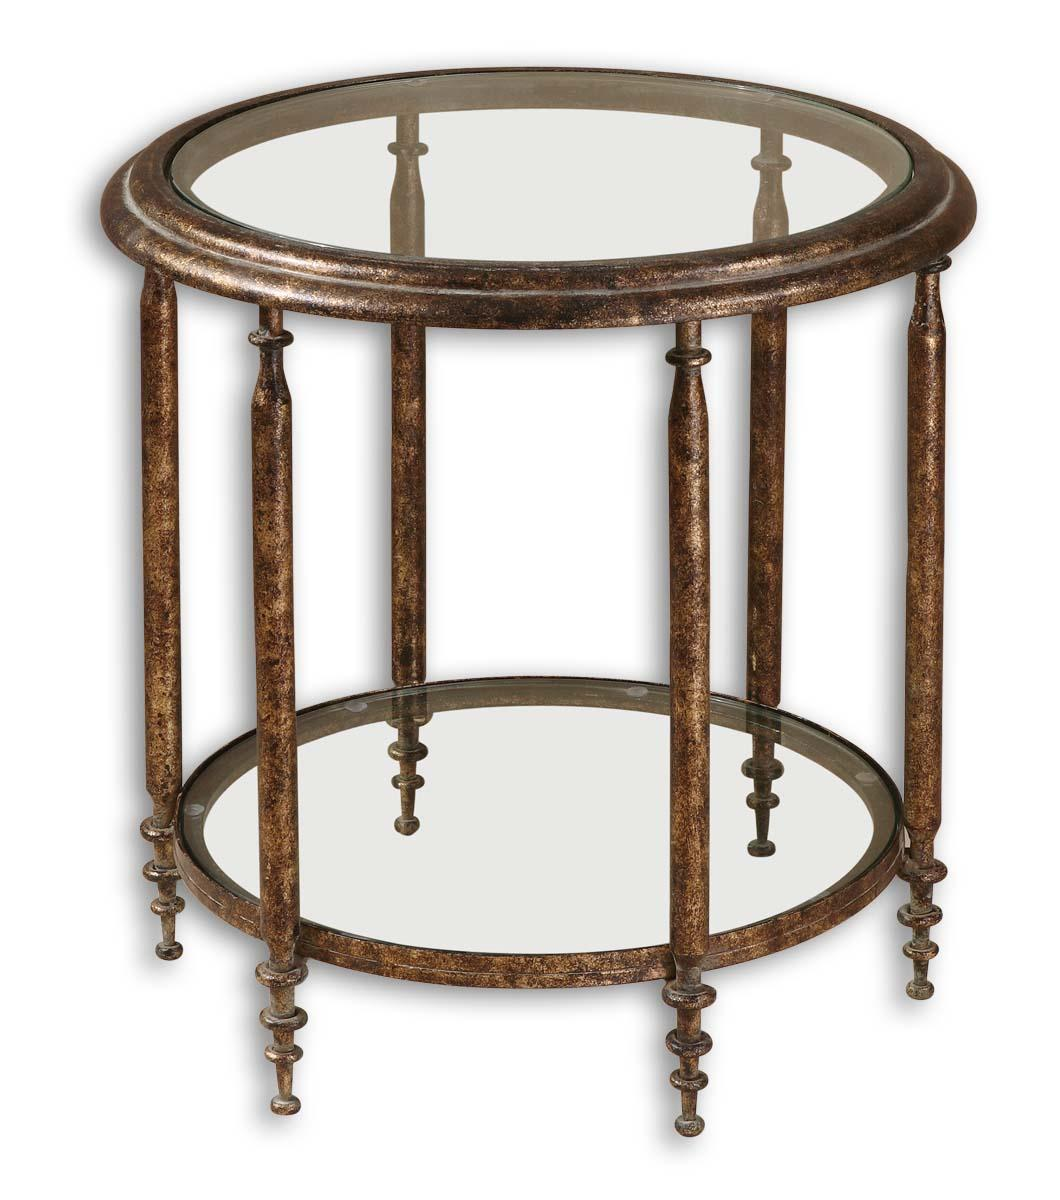 Uttermost Accent Furniture Leilani Accent Table - Item Number: 26011